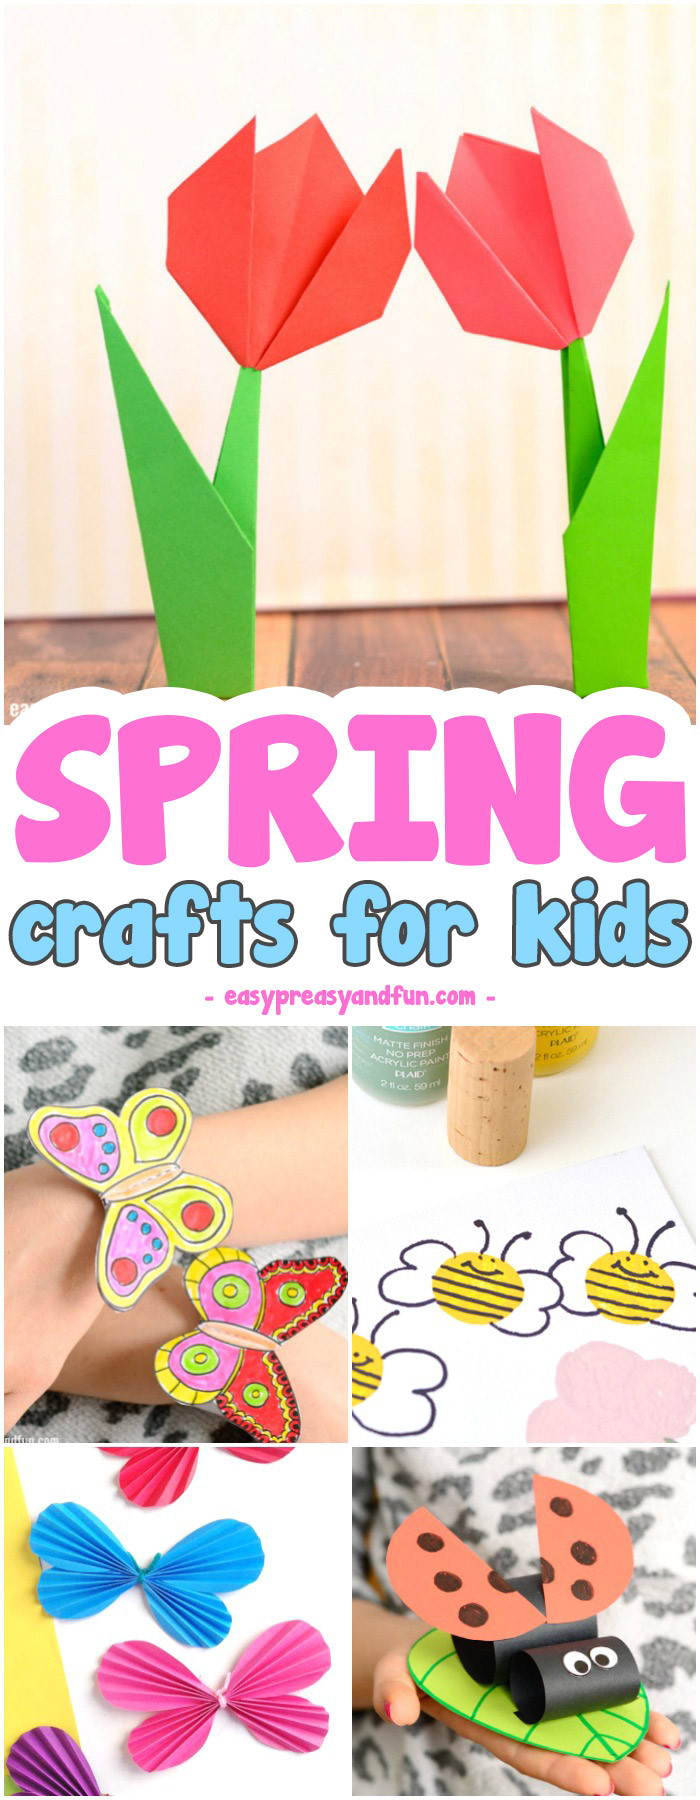 Best ideas about Fun Crafts For Preschoolers . Save or Pin Spring Crafts for Kids Art and Craft Project Ideas for Now.